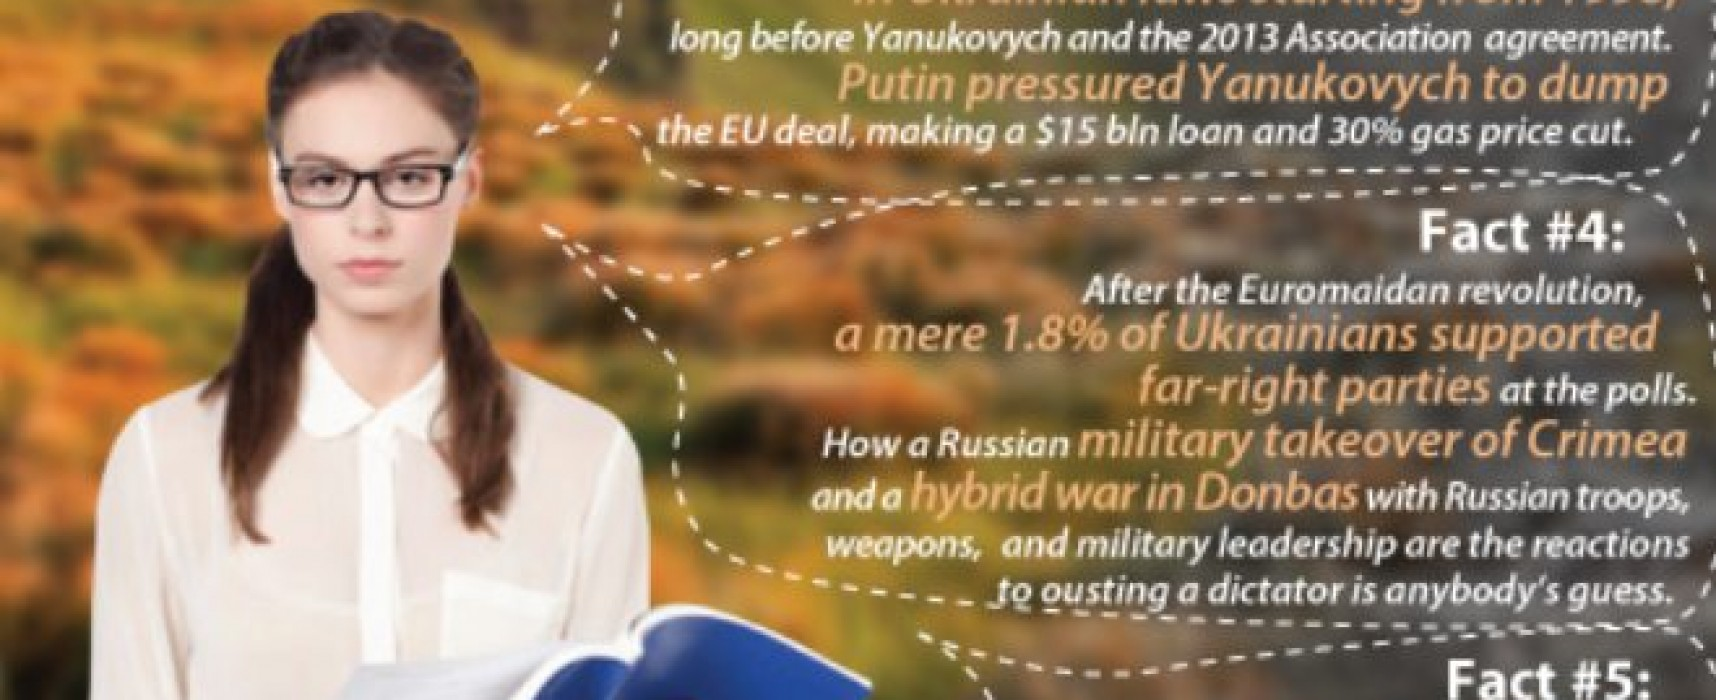 Know your refutations: 5 myths that are used to promote Russia's war in Ukraine